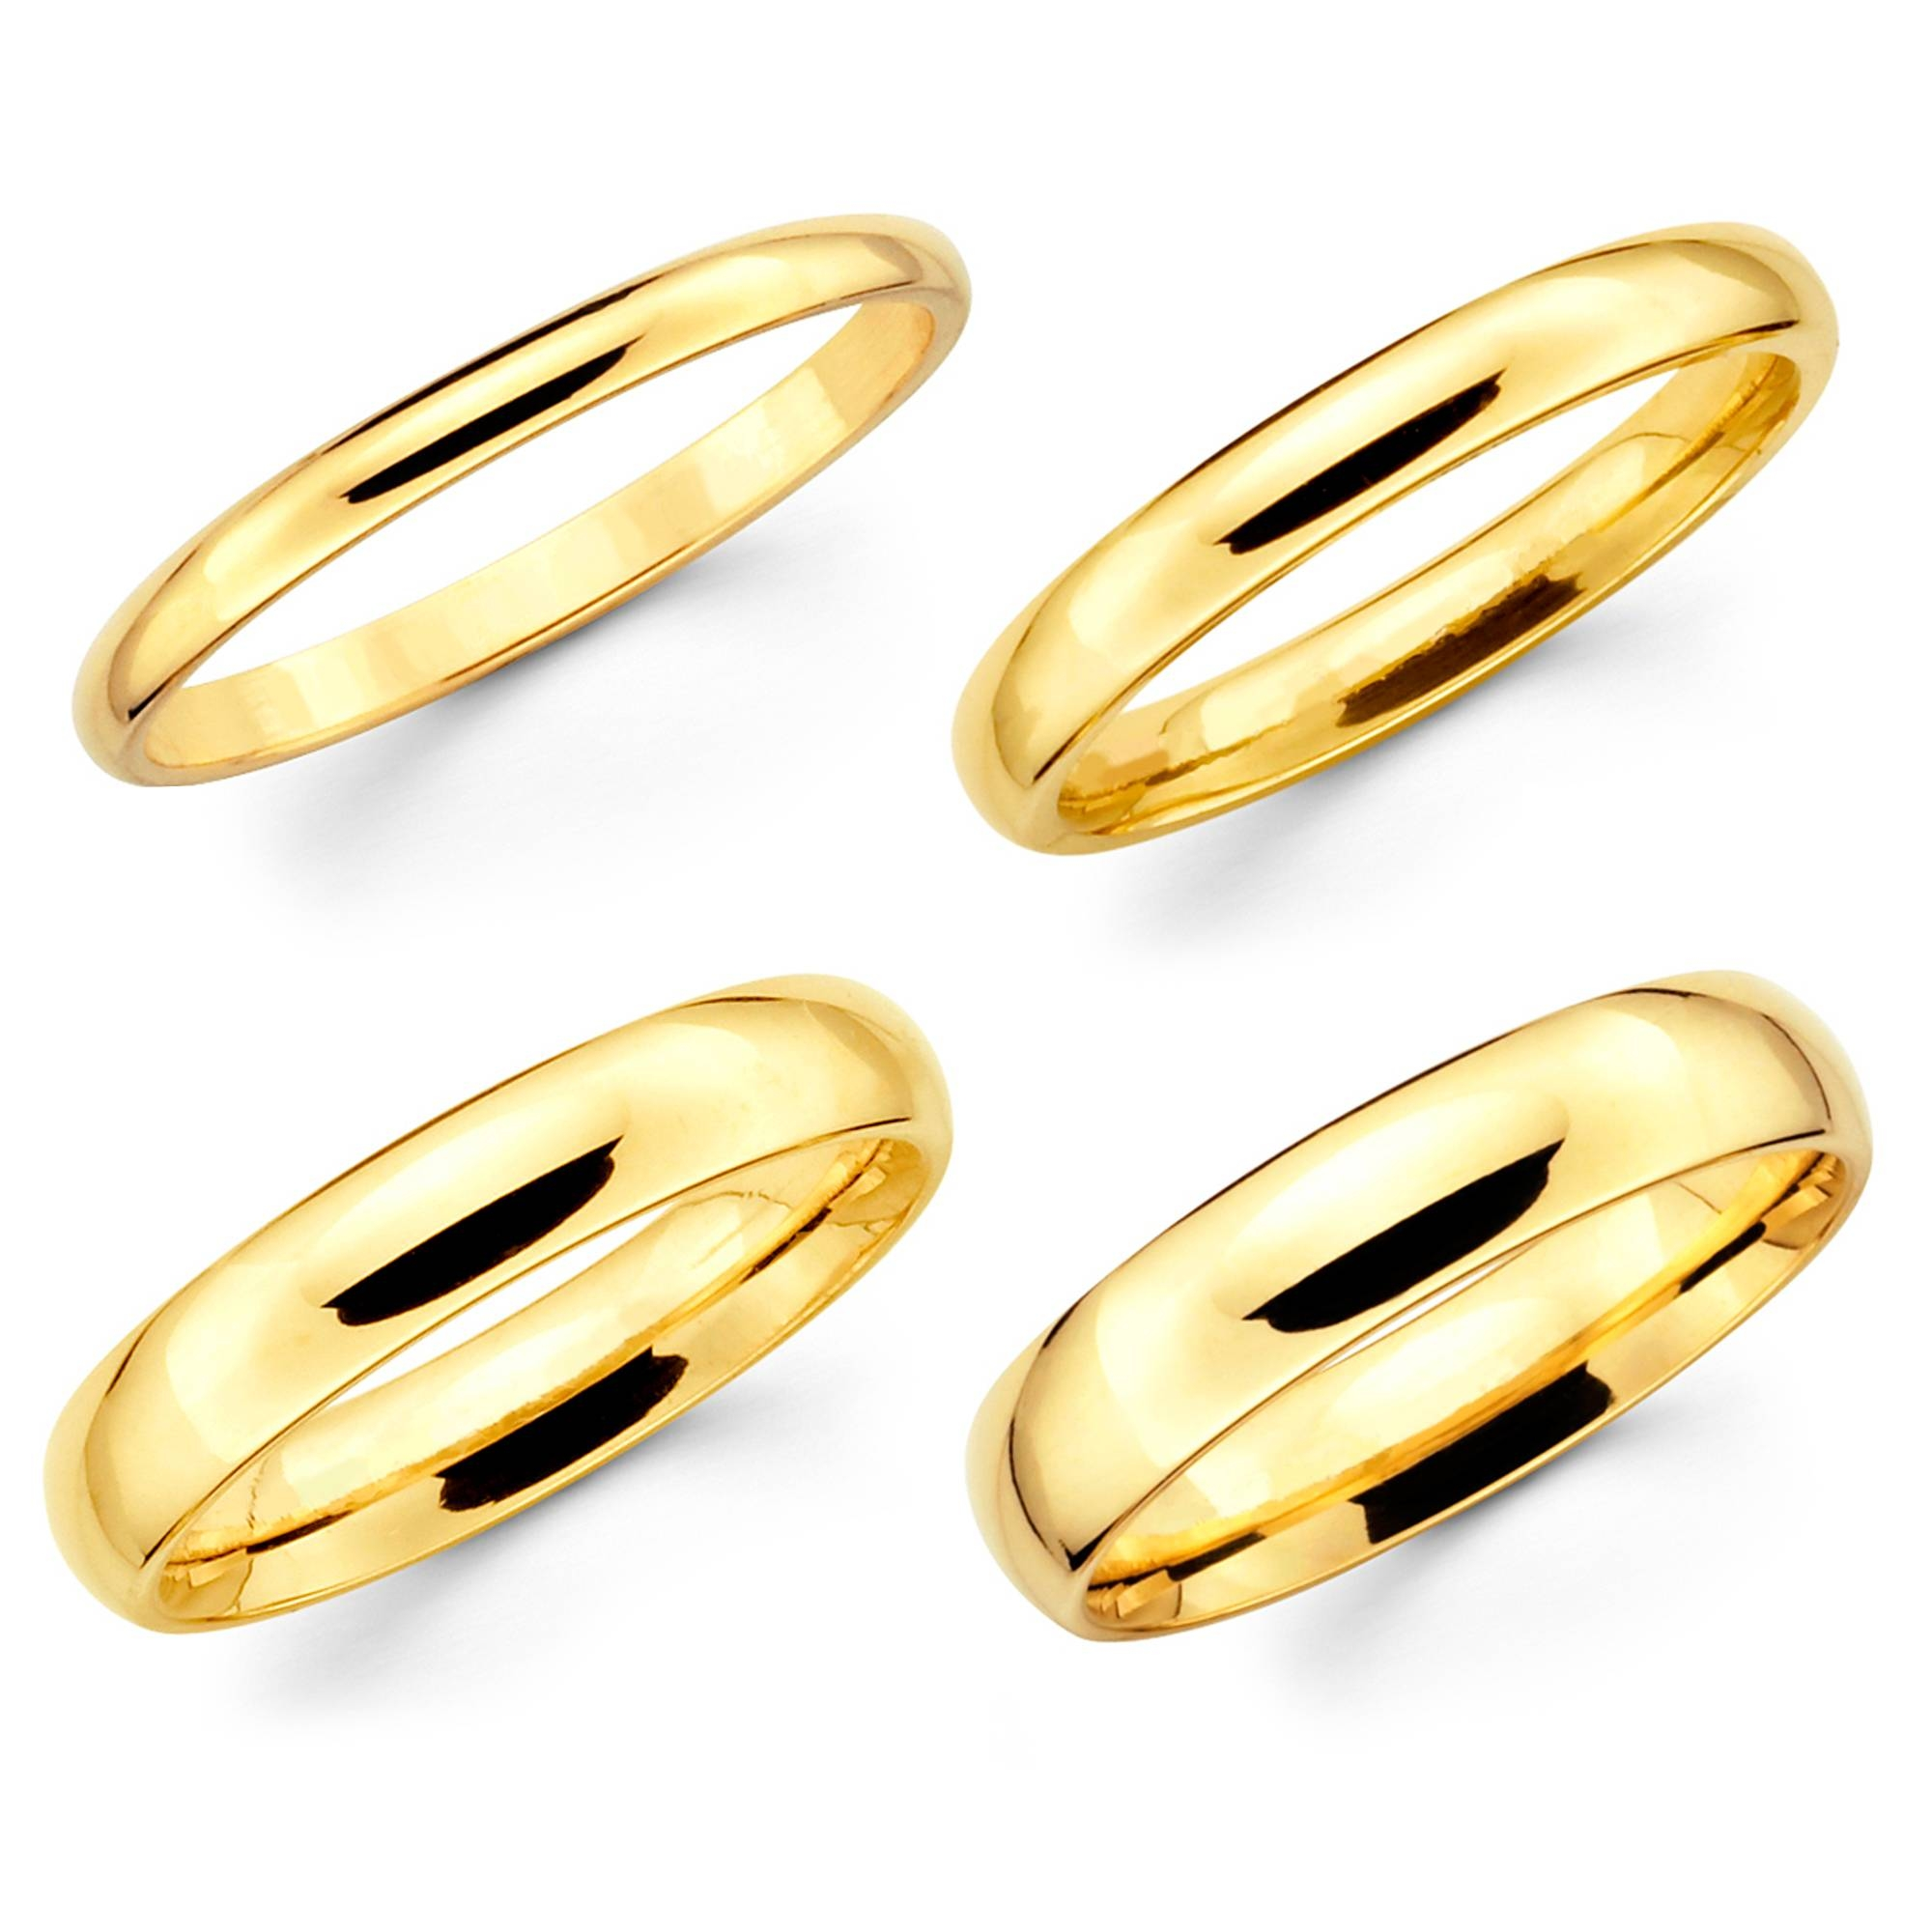 10 Carat Gold Wedding Bands Tags : Pure Gold Wedding Rings Wedding For Gold Wedding Bands For Men (View 7 of 15)